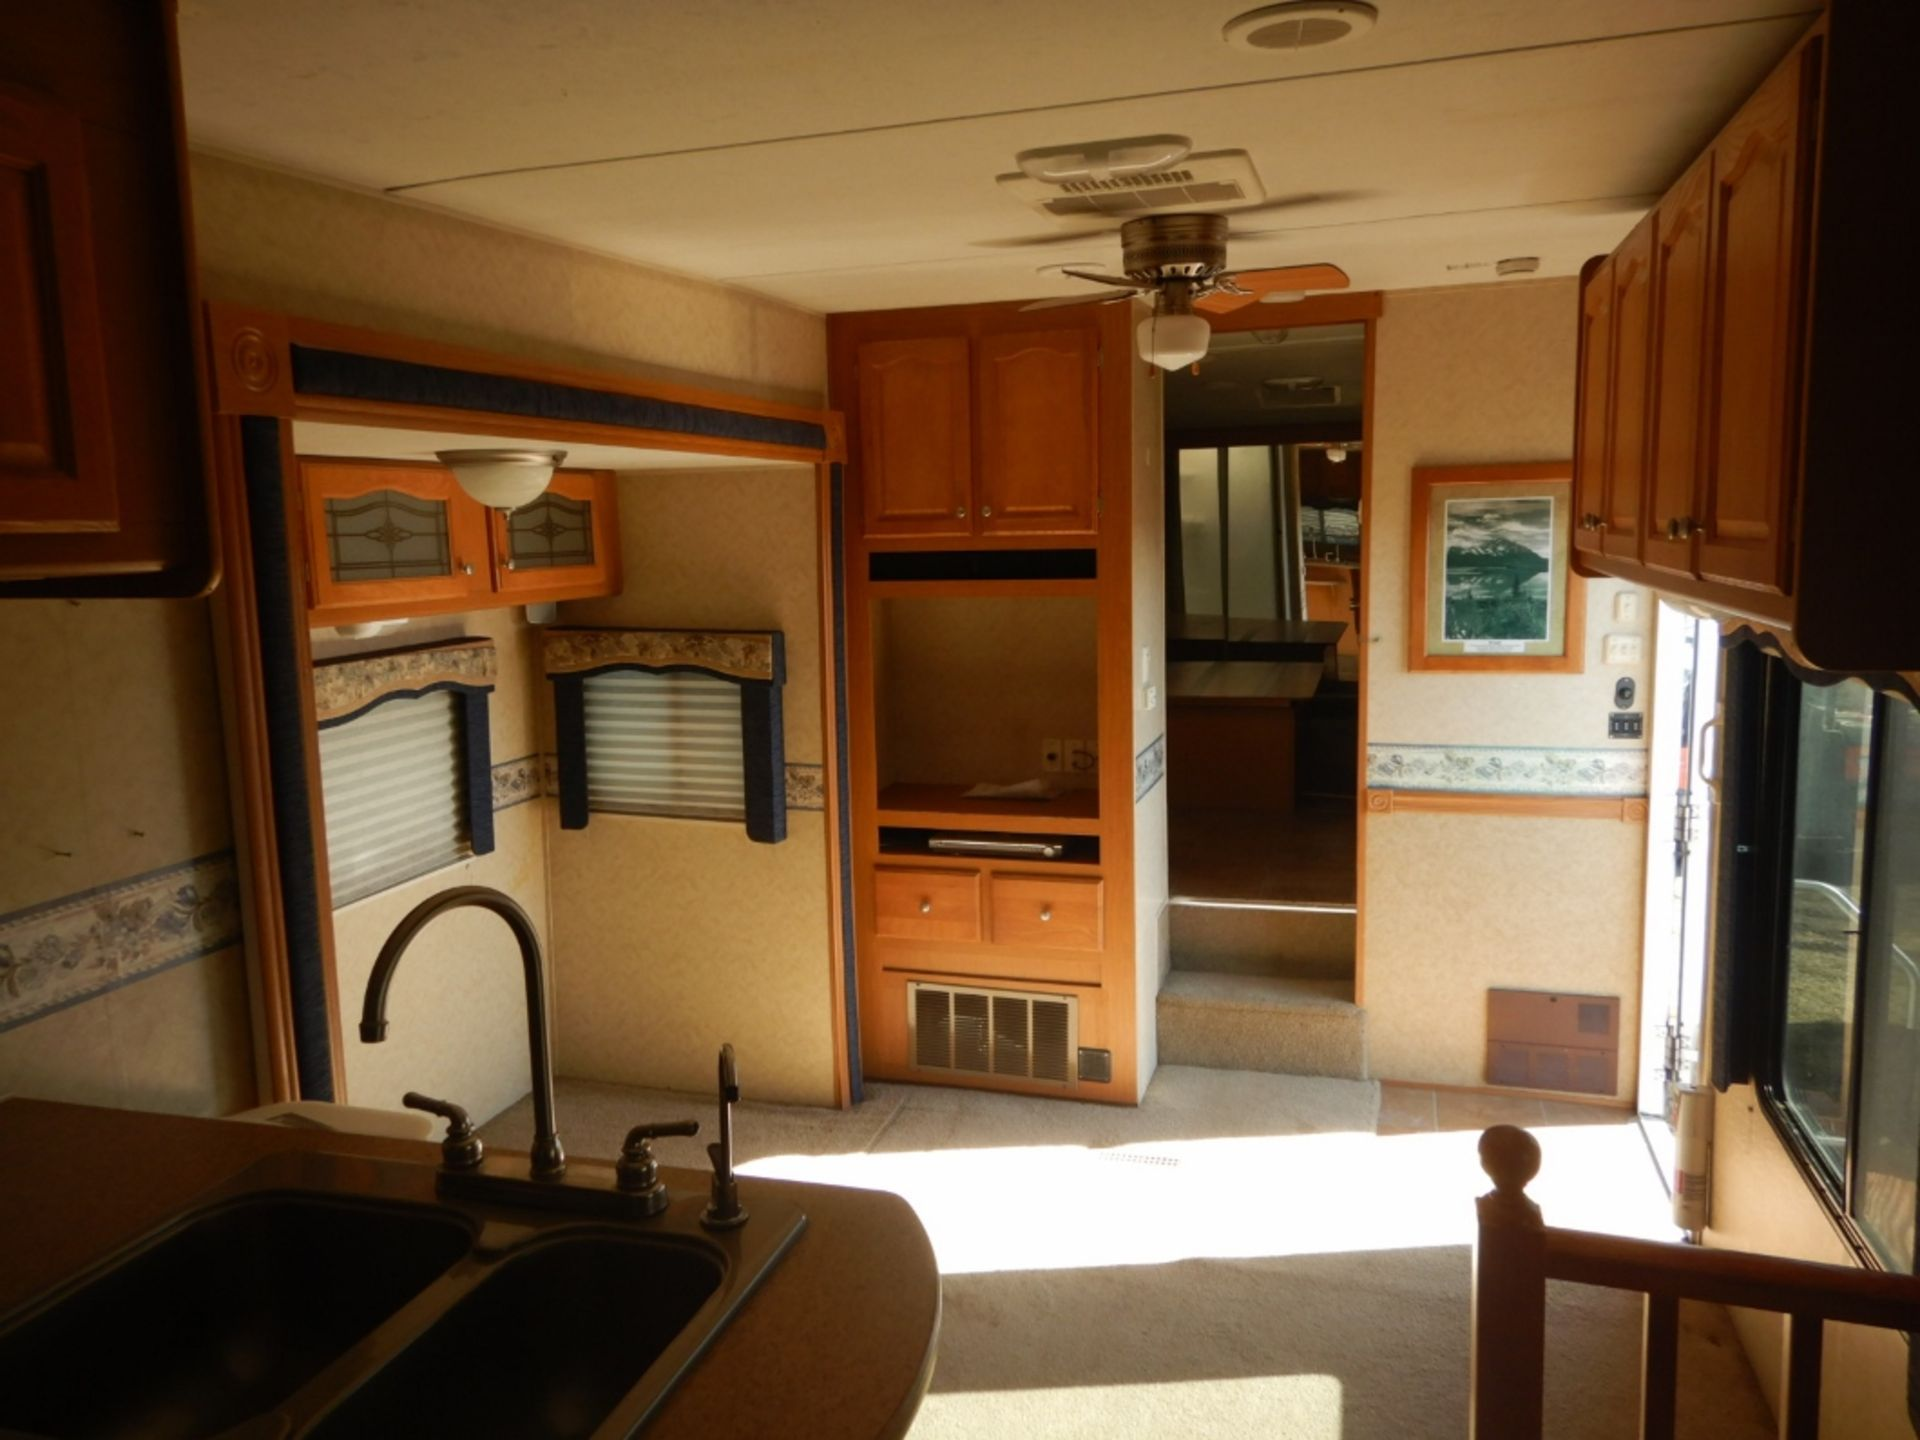 2006 DUTCHMEN DENALI 31RGBS/M5 5W HOLIDAY RV TRAILER S/N 47CFD1S226P616039 W/3-SLIDE-OUTS, AWNING, - Image 11 of 16